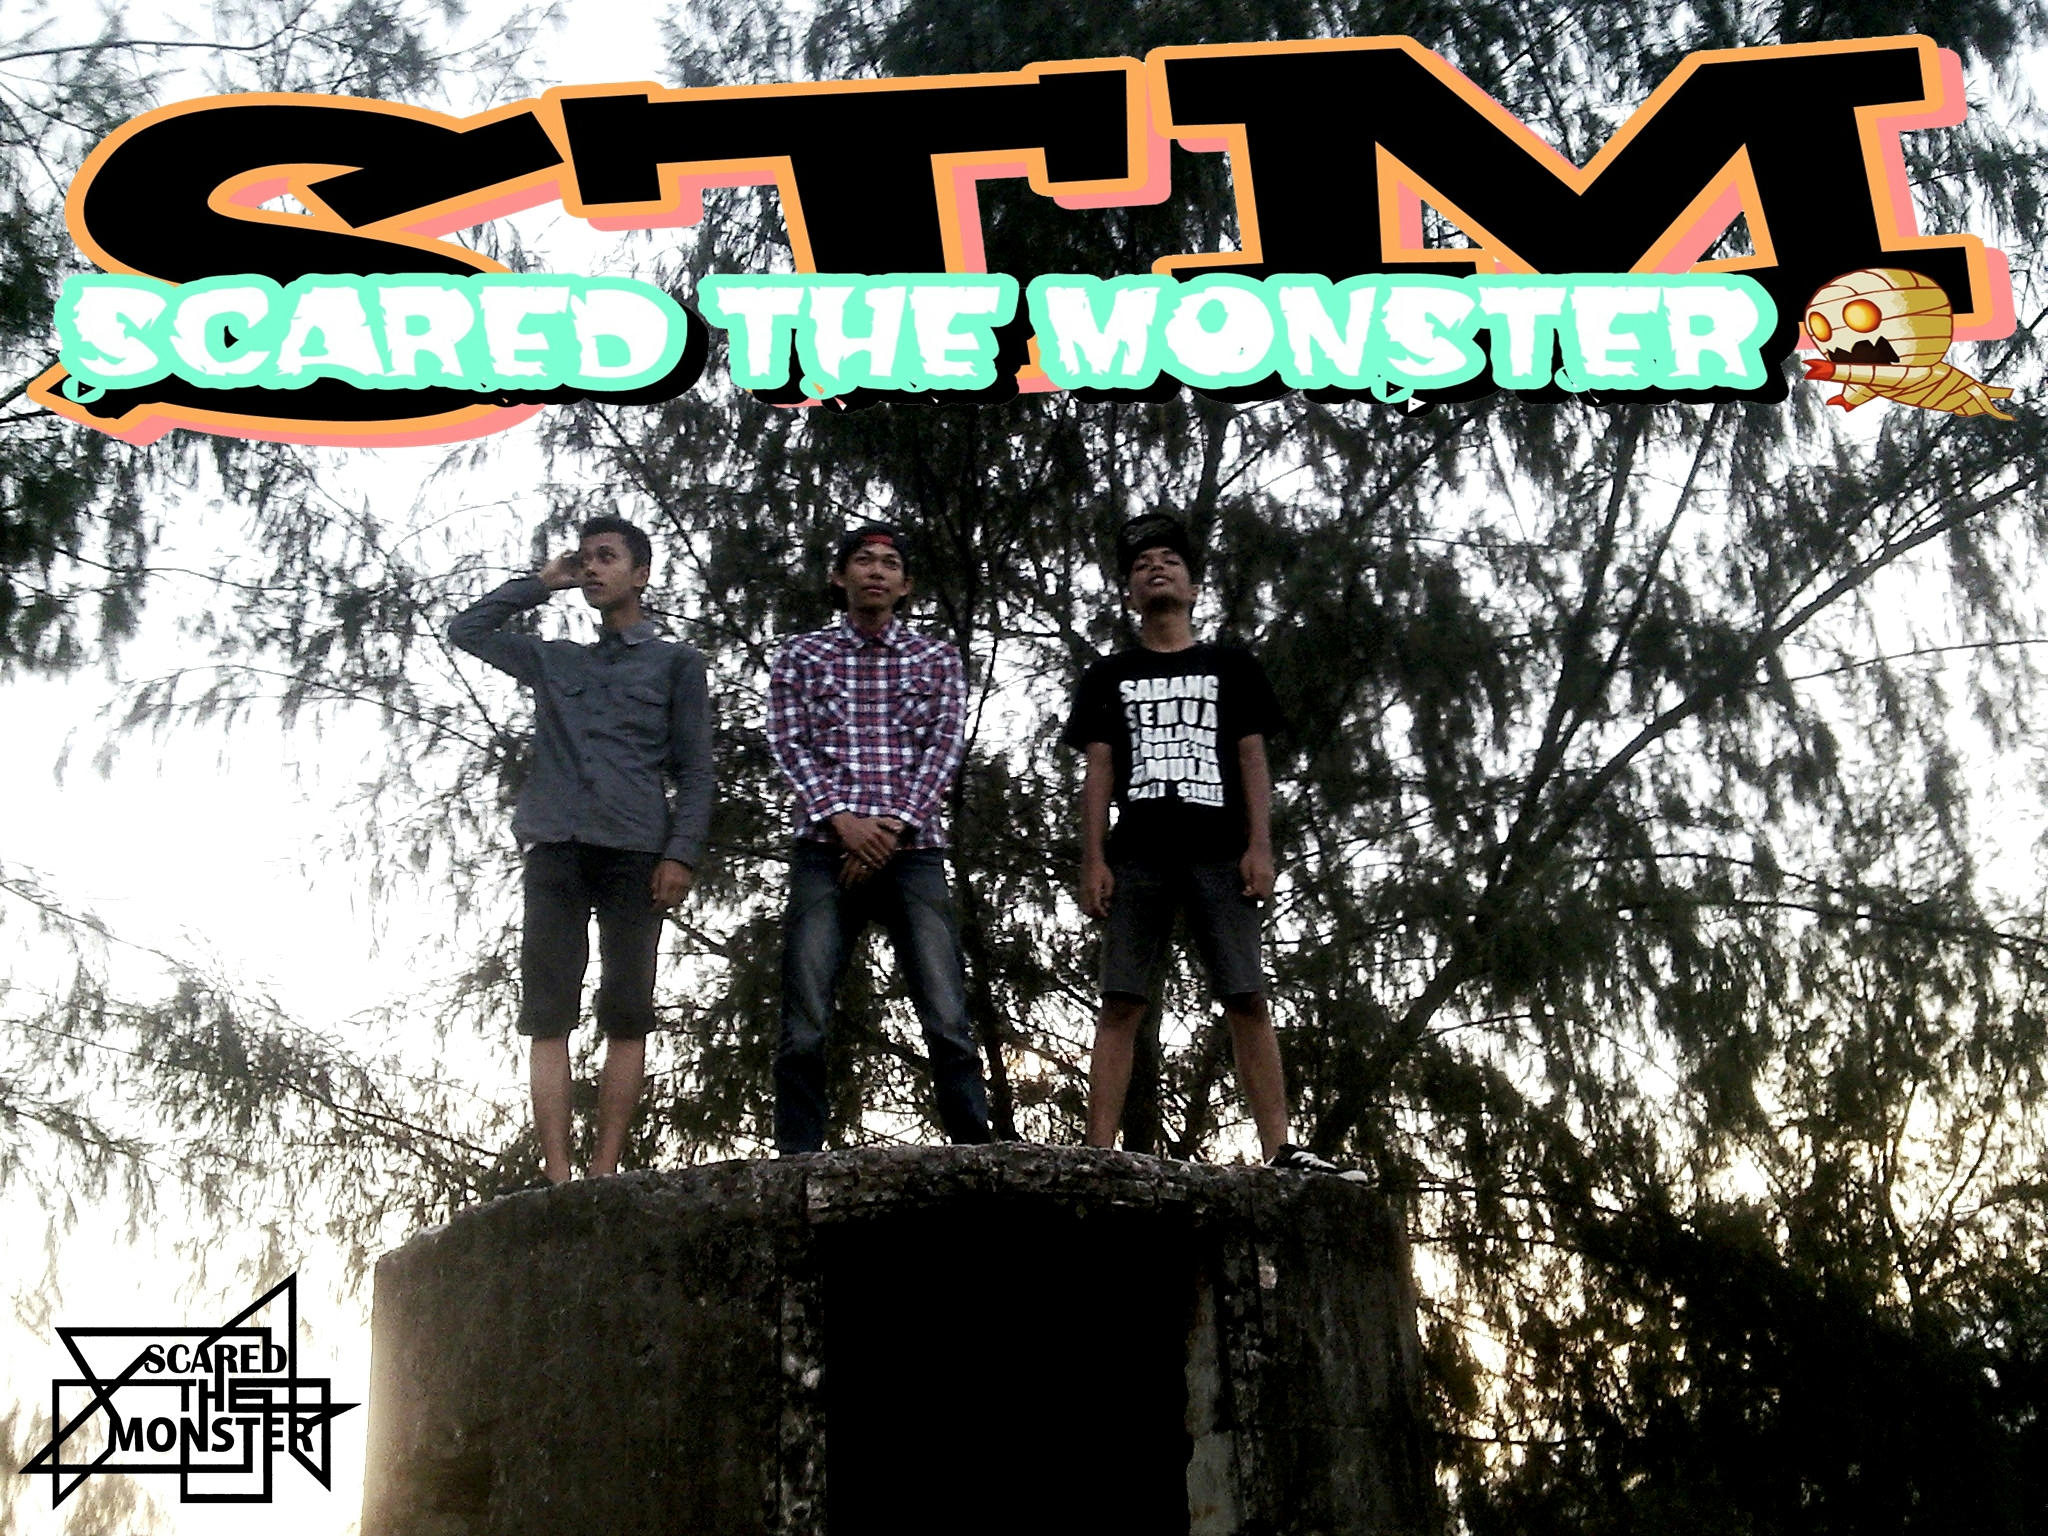 Scared The Monster Band Punk Rock / Melodic Punk Sabang - Aceh